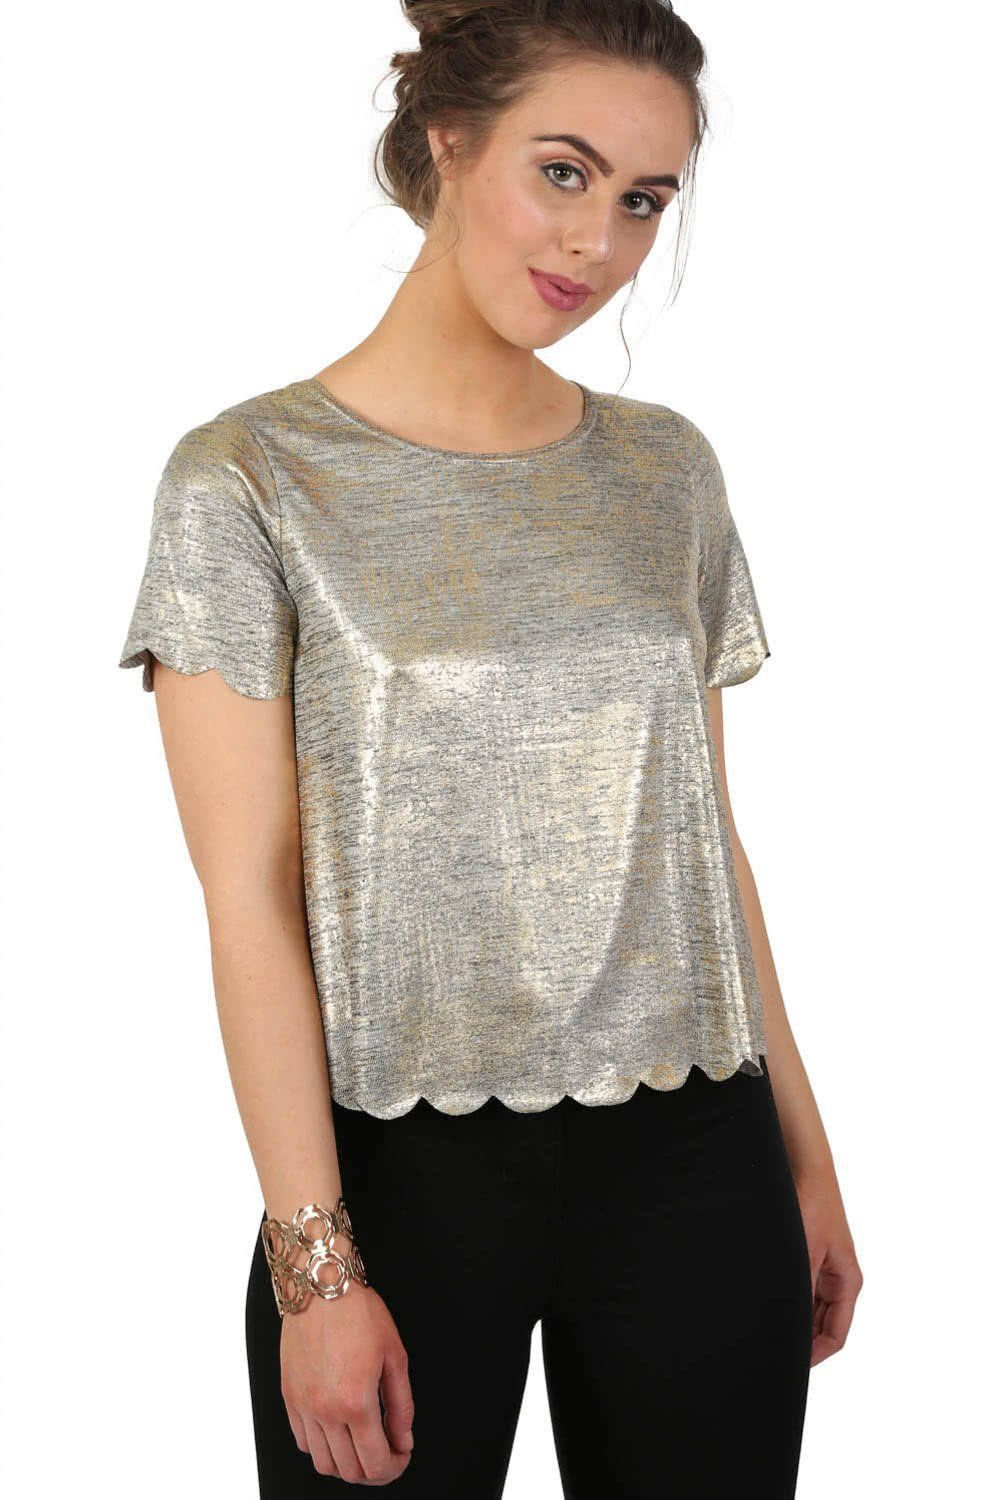 Short Sleeve Metallic Scallop Edge Top in Gold 0